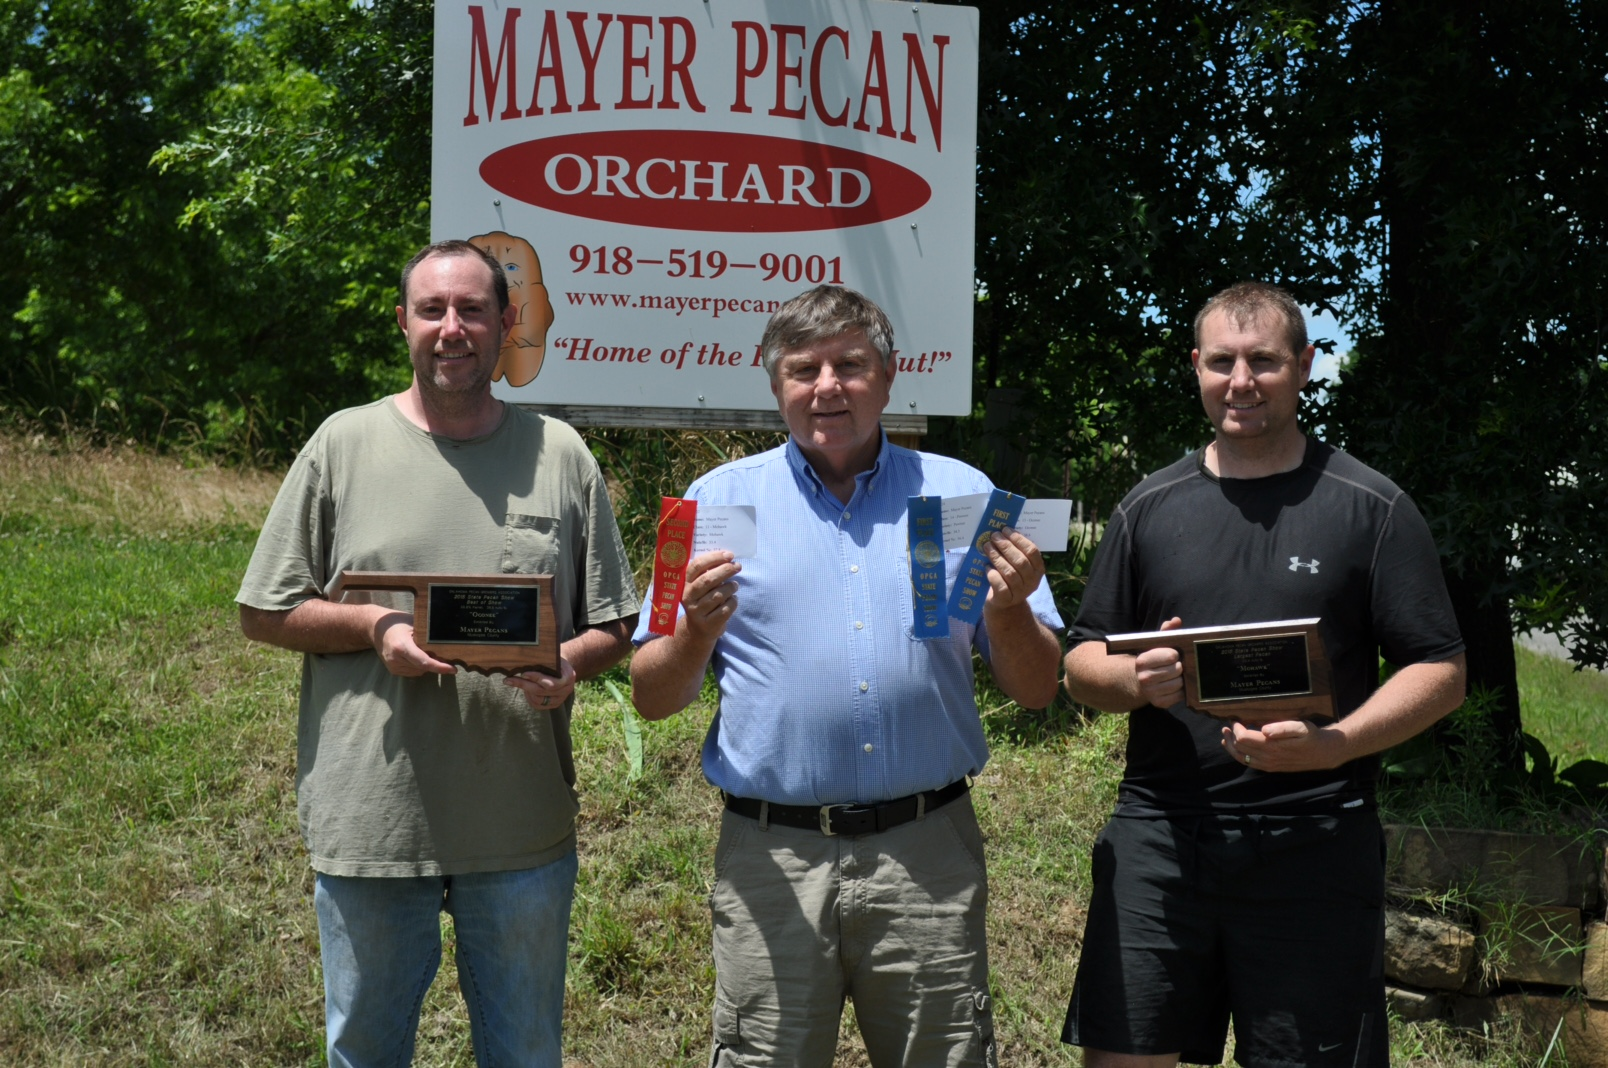 picture of Mayer Pecan Orchard with all their awards won at the 2018 Oklahoma Pecan Growers Association Convention. 1st Place Pawnee Pecan, 1st Place Oconee Pecan, 2nd Place Mohawk Pecan, Best in Show, Largest Pecan